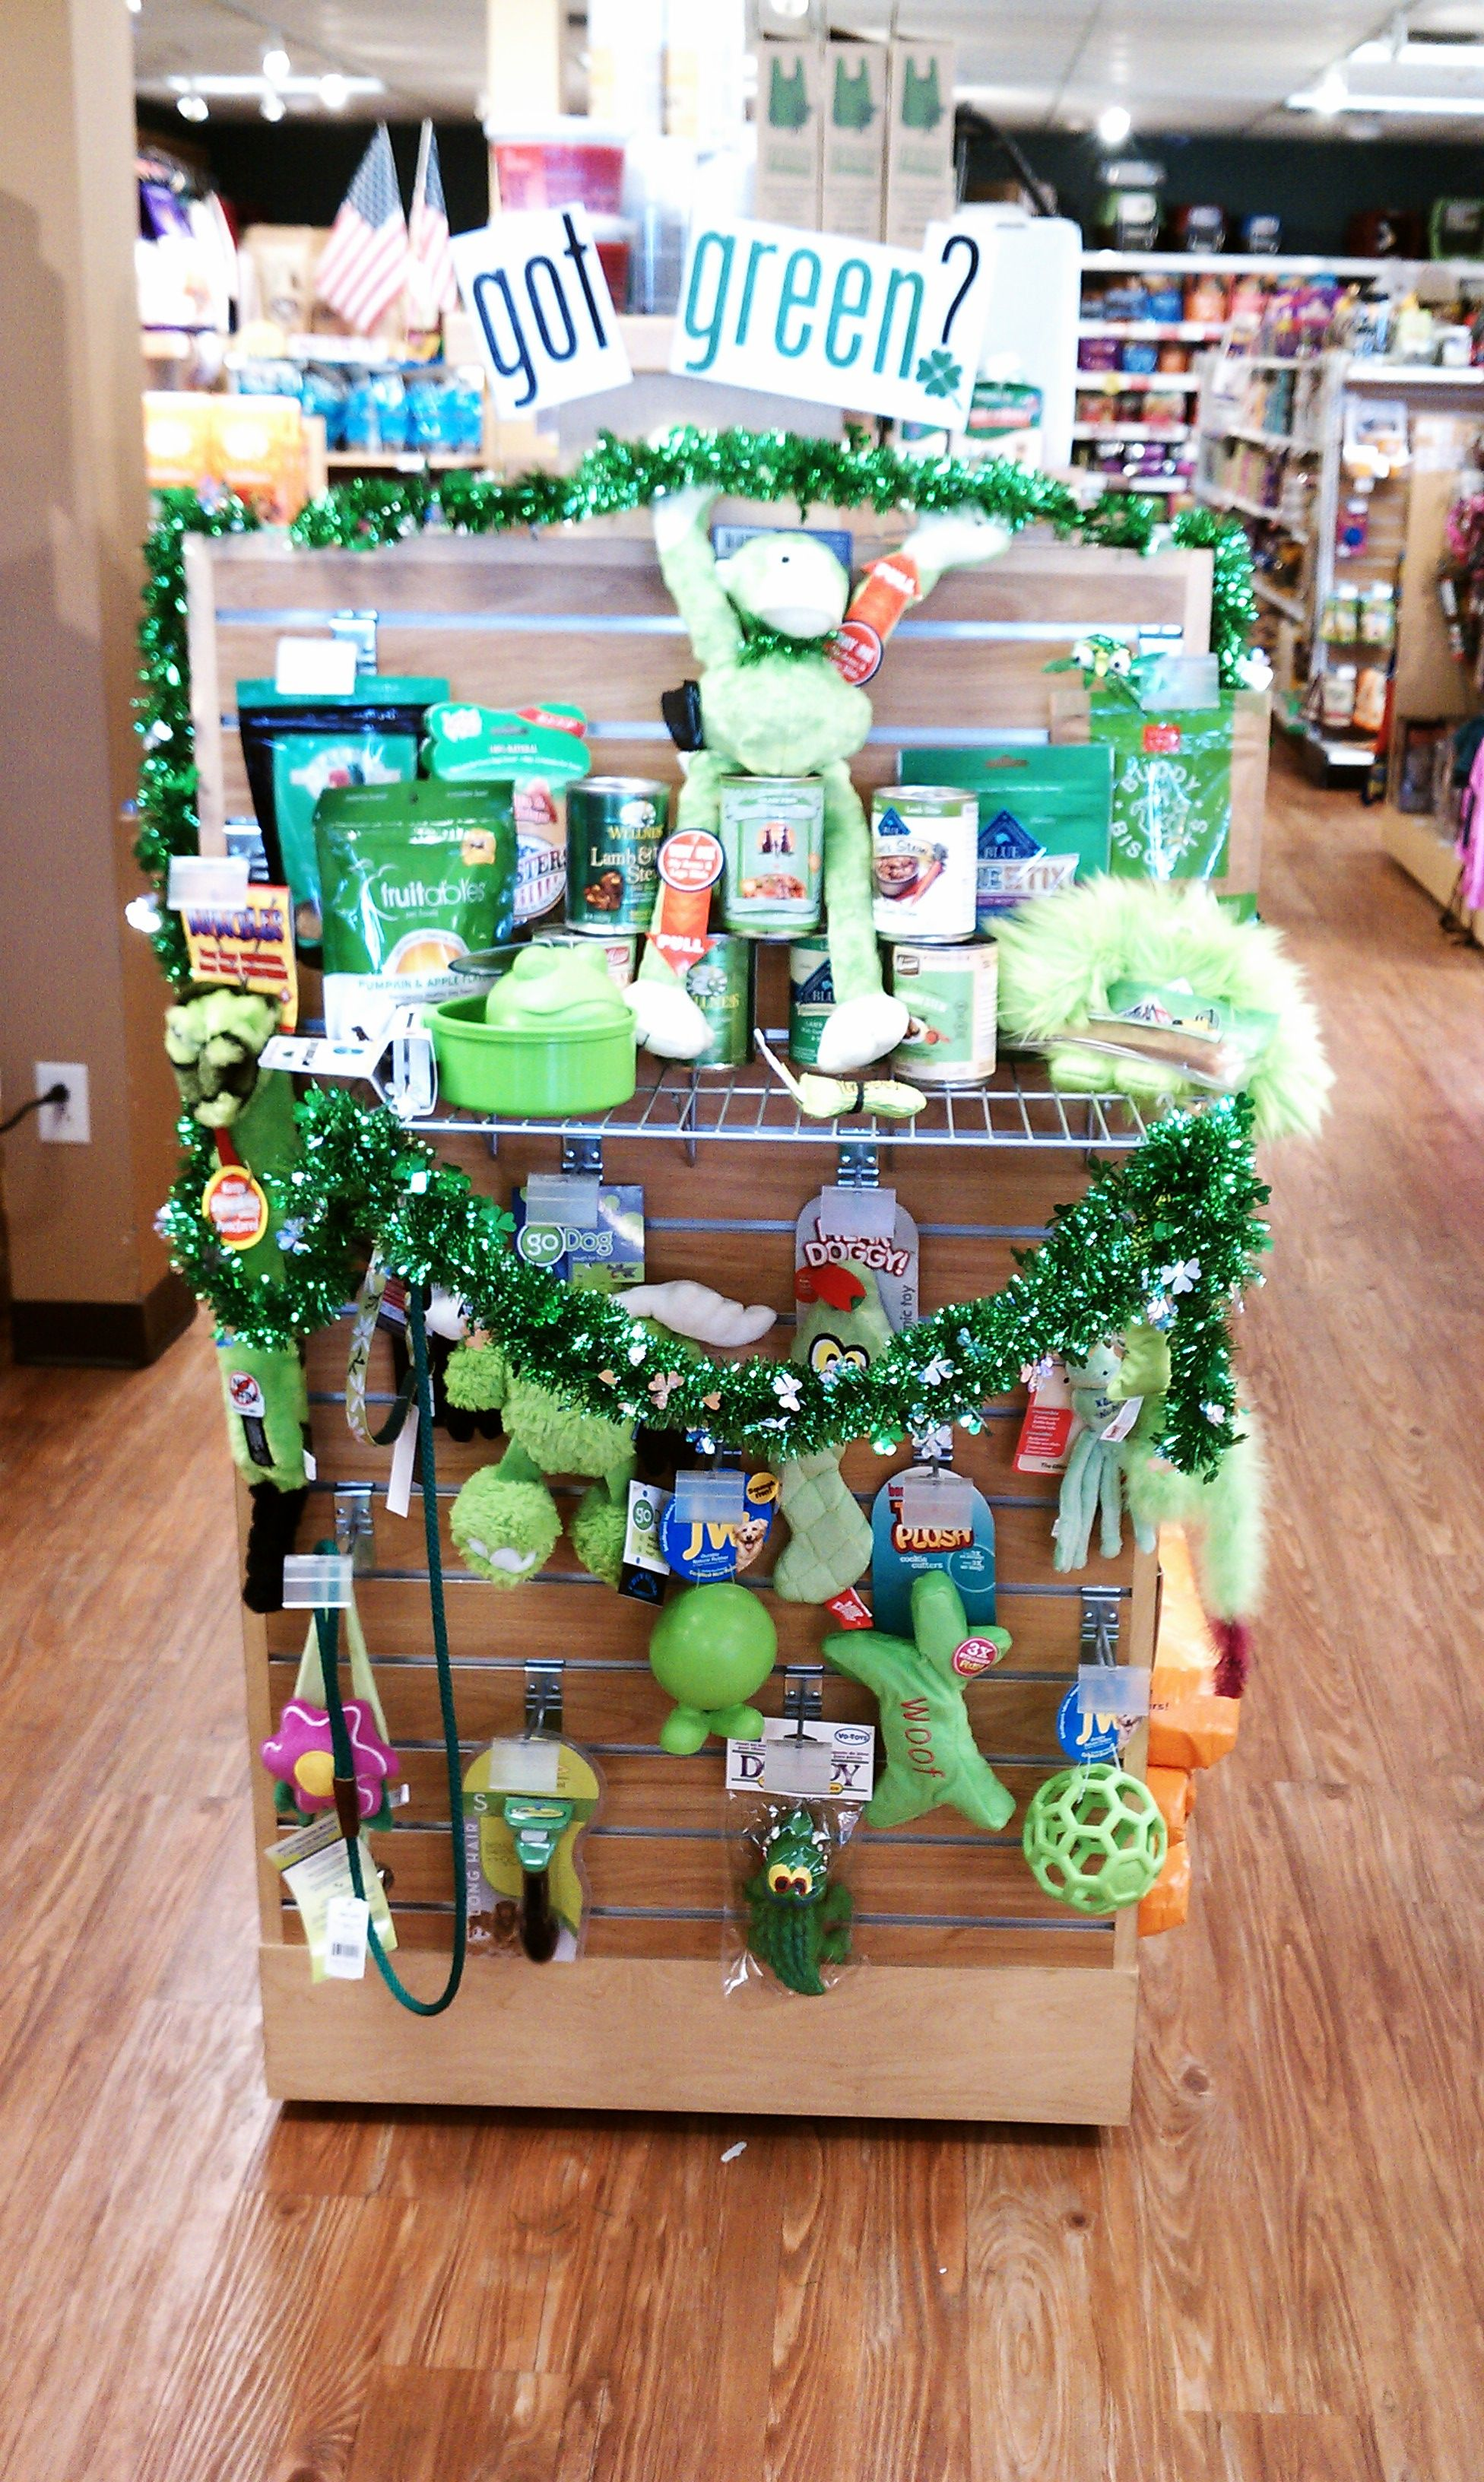 Got Green The Cherrybrook Store In Bedminster Sure Does Dog Grooming Supplies Pet Supplies Dog Shampoo